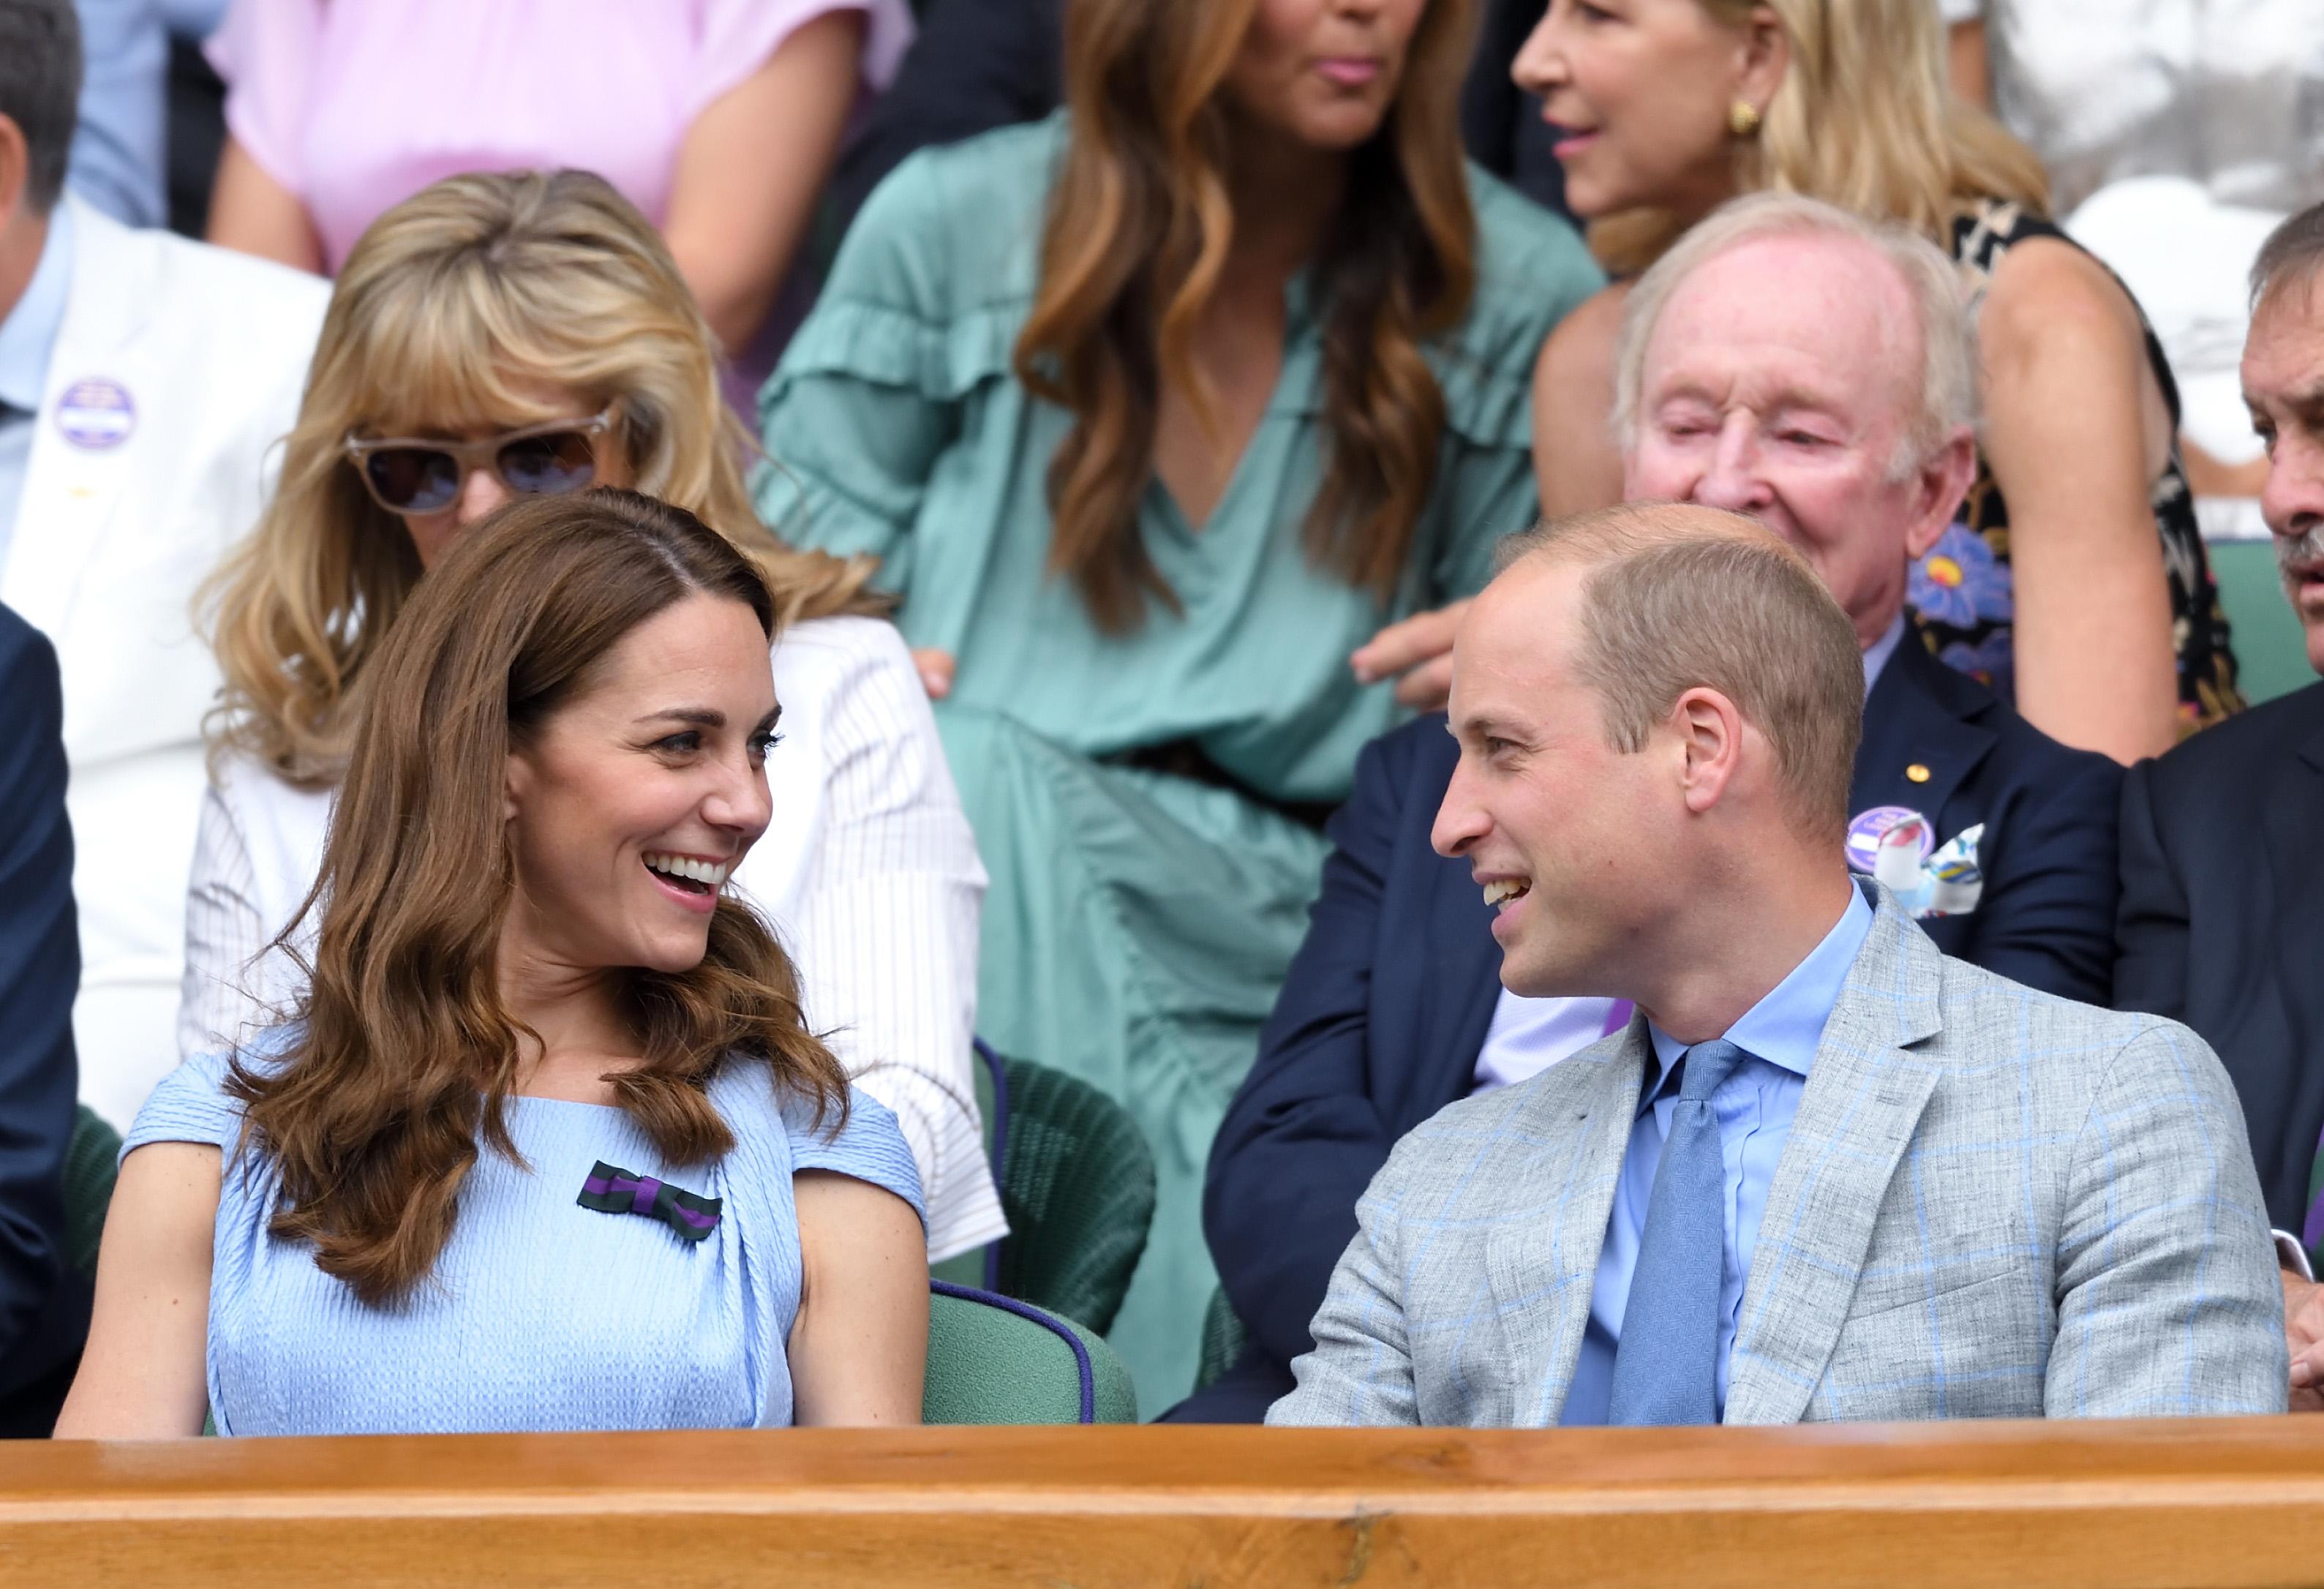 LONDON, ENGLAND - JULY 14: Catherine, Duchess of Cambridge and Prince William, Duke of Cambridge in the Royal Box on Centre court during Men's Finals Day of the Wimbledon Tennis Championships at All England Lawn Tennis and Croquet Club on July 14, 2019 in London, England. (Photo by Karwai Tang/Getty Images)